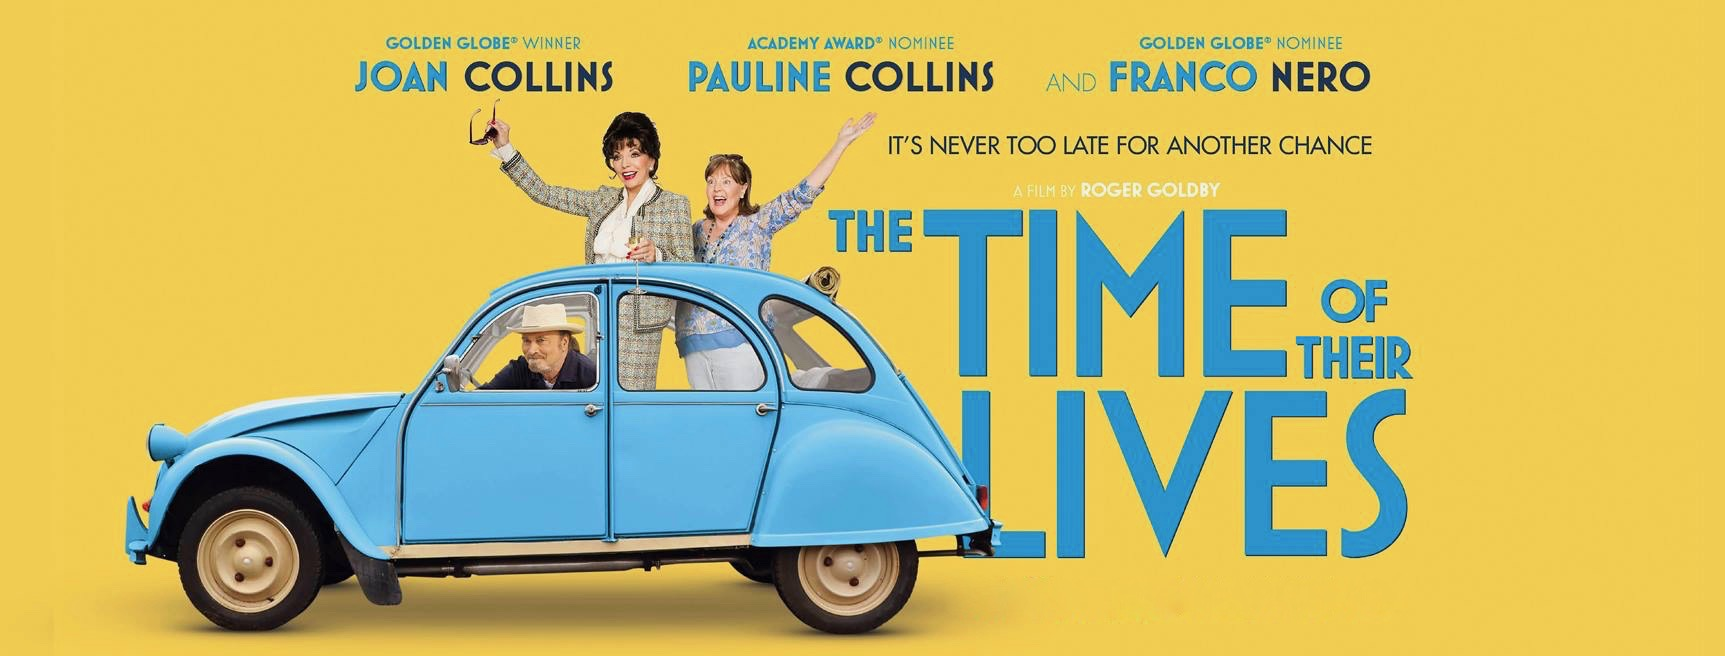 The-Time-of-Their-Lives-Trailer-and-Info